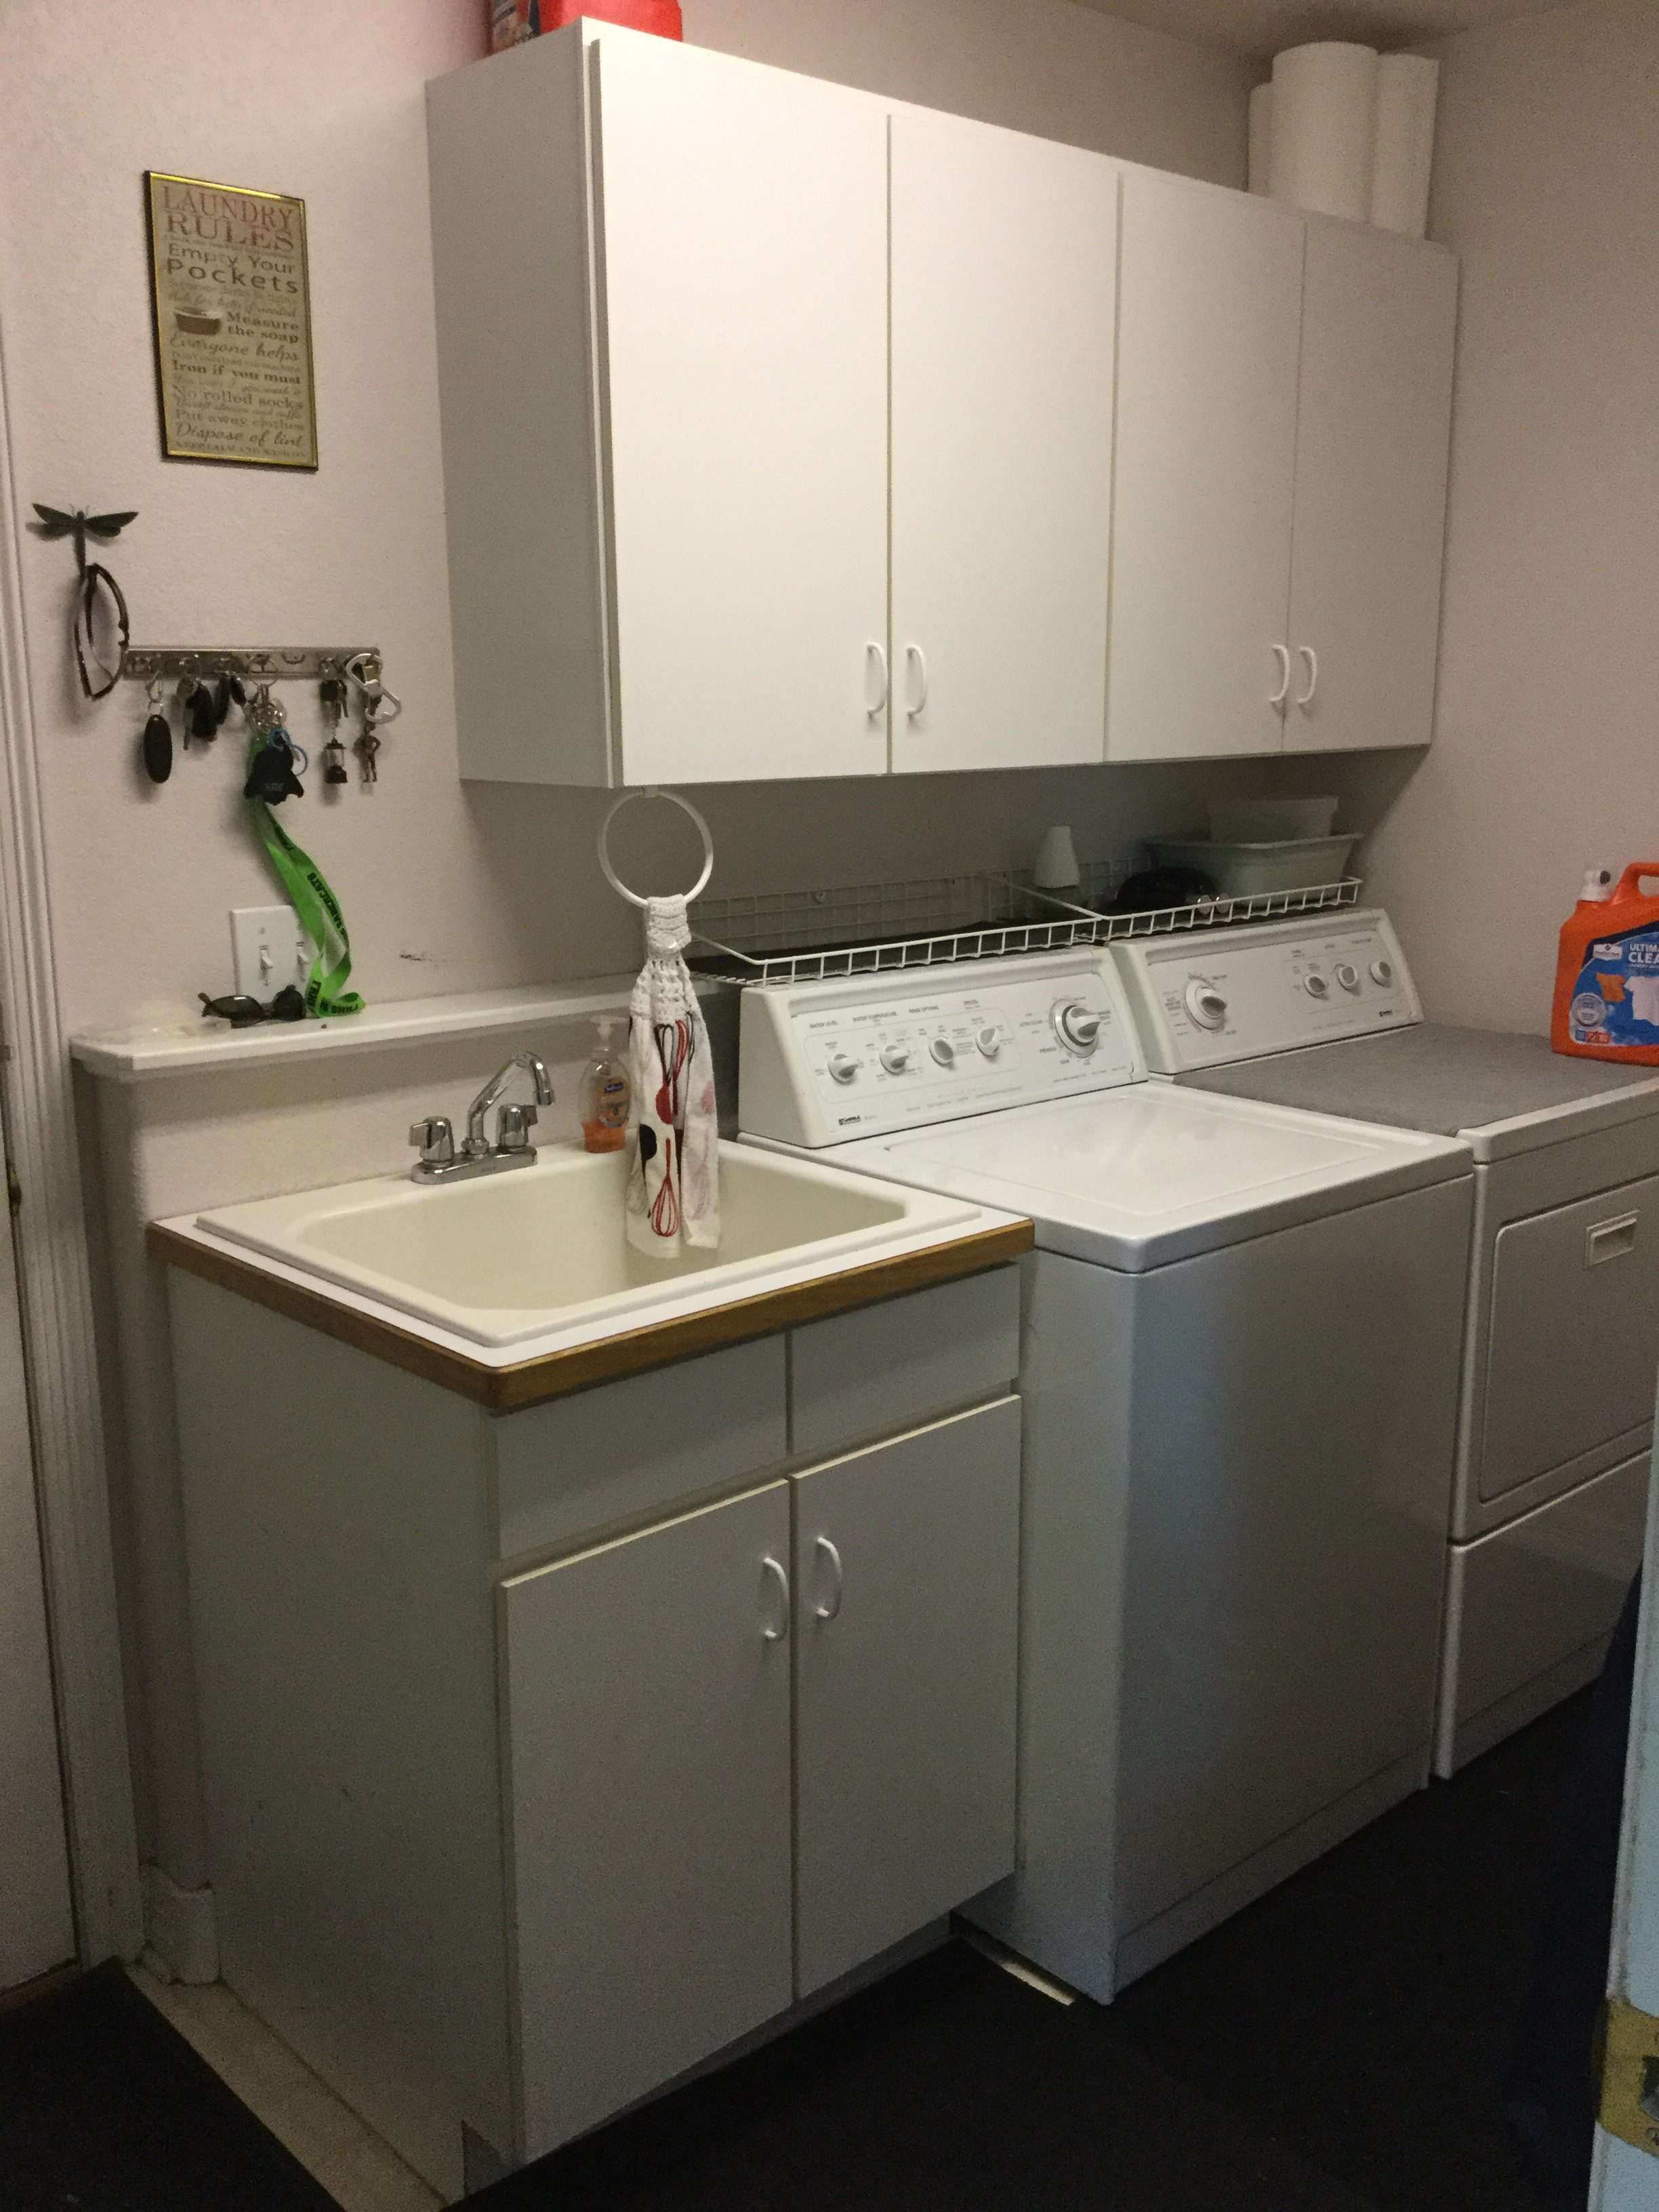 Inexpensive Laundry Room Makeover on